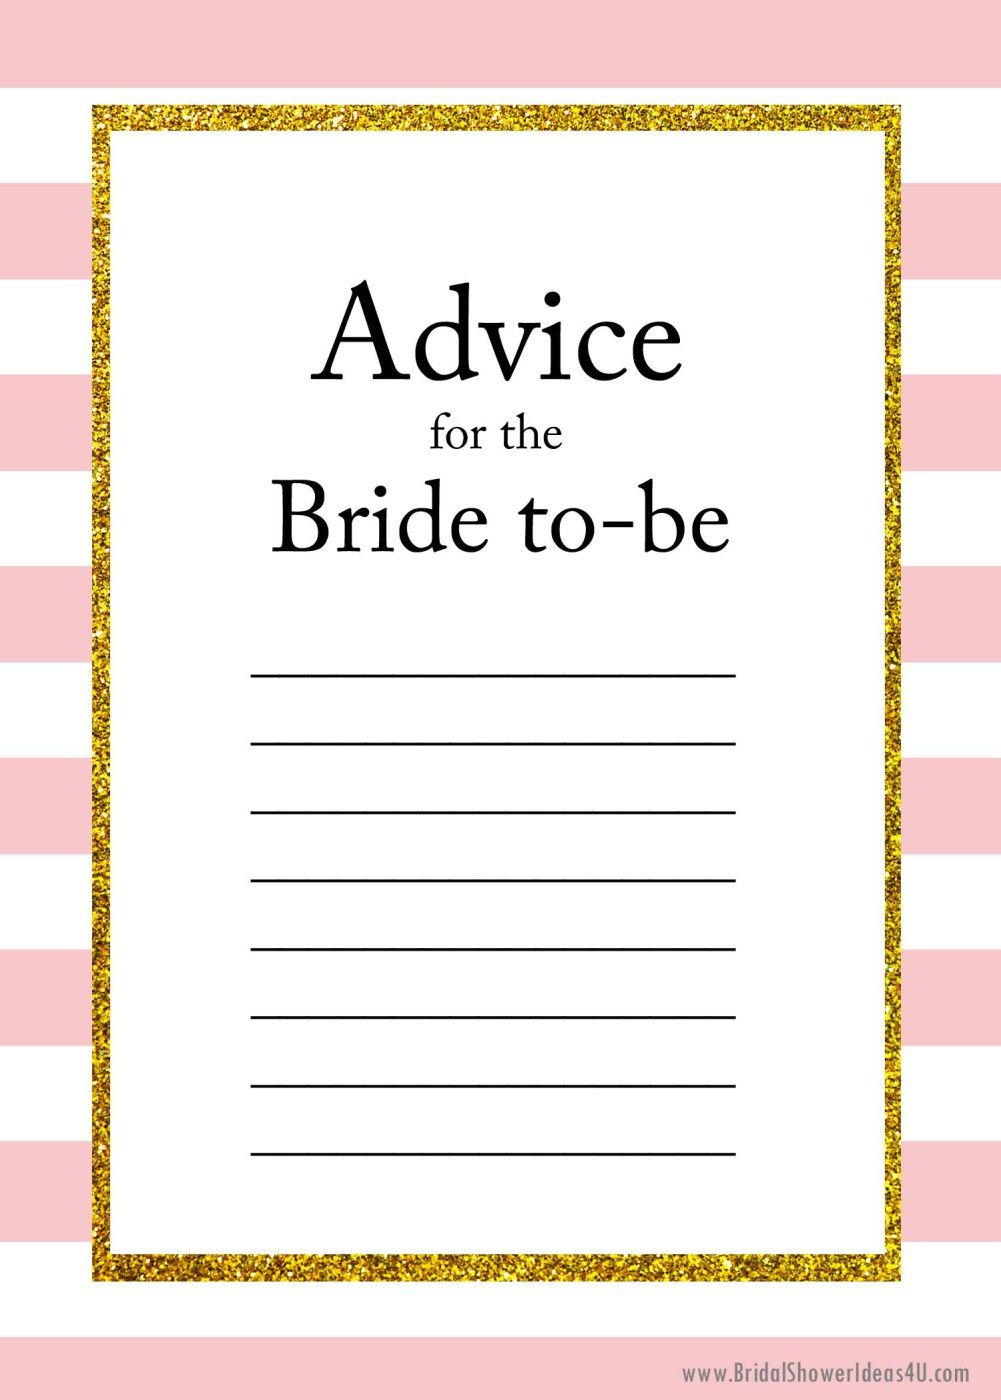 Free Printable Advice For The Bride To Be Cards | Friendship - Free Printable Bridal Shower Advice Cards